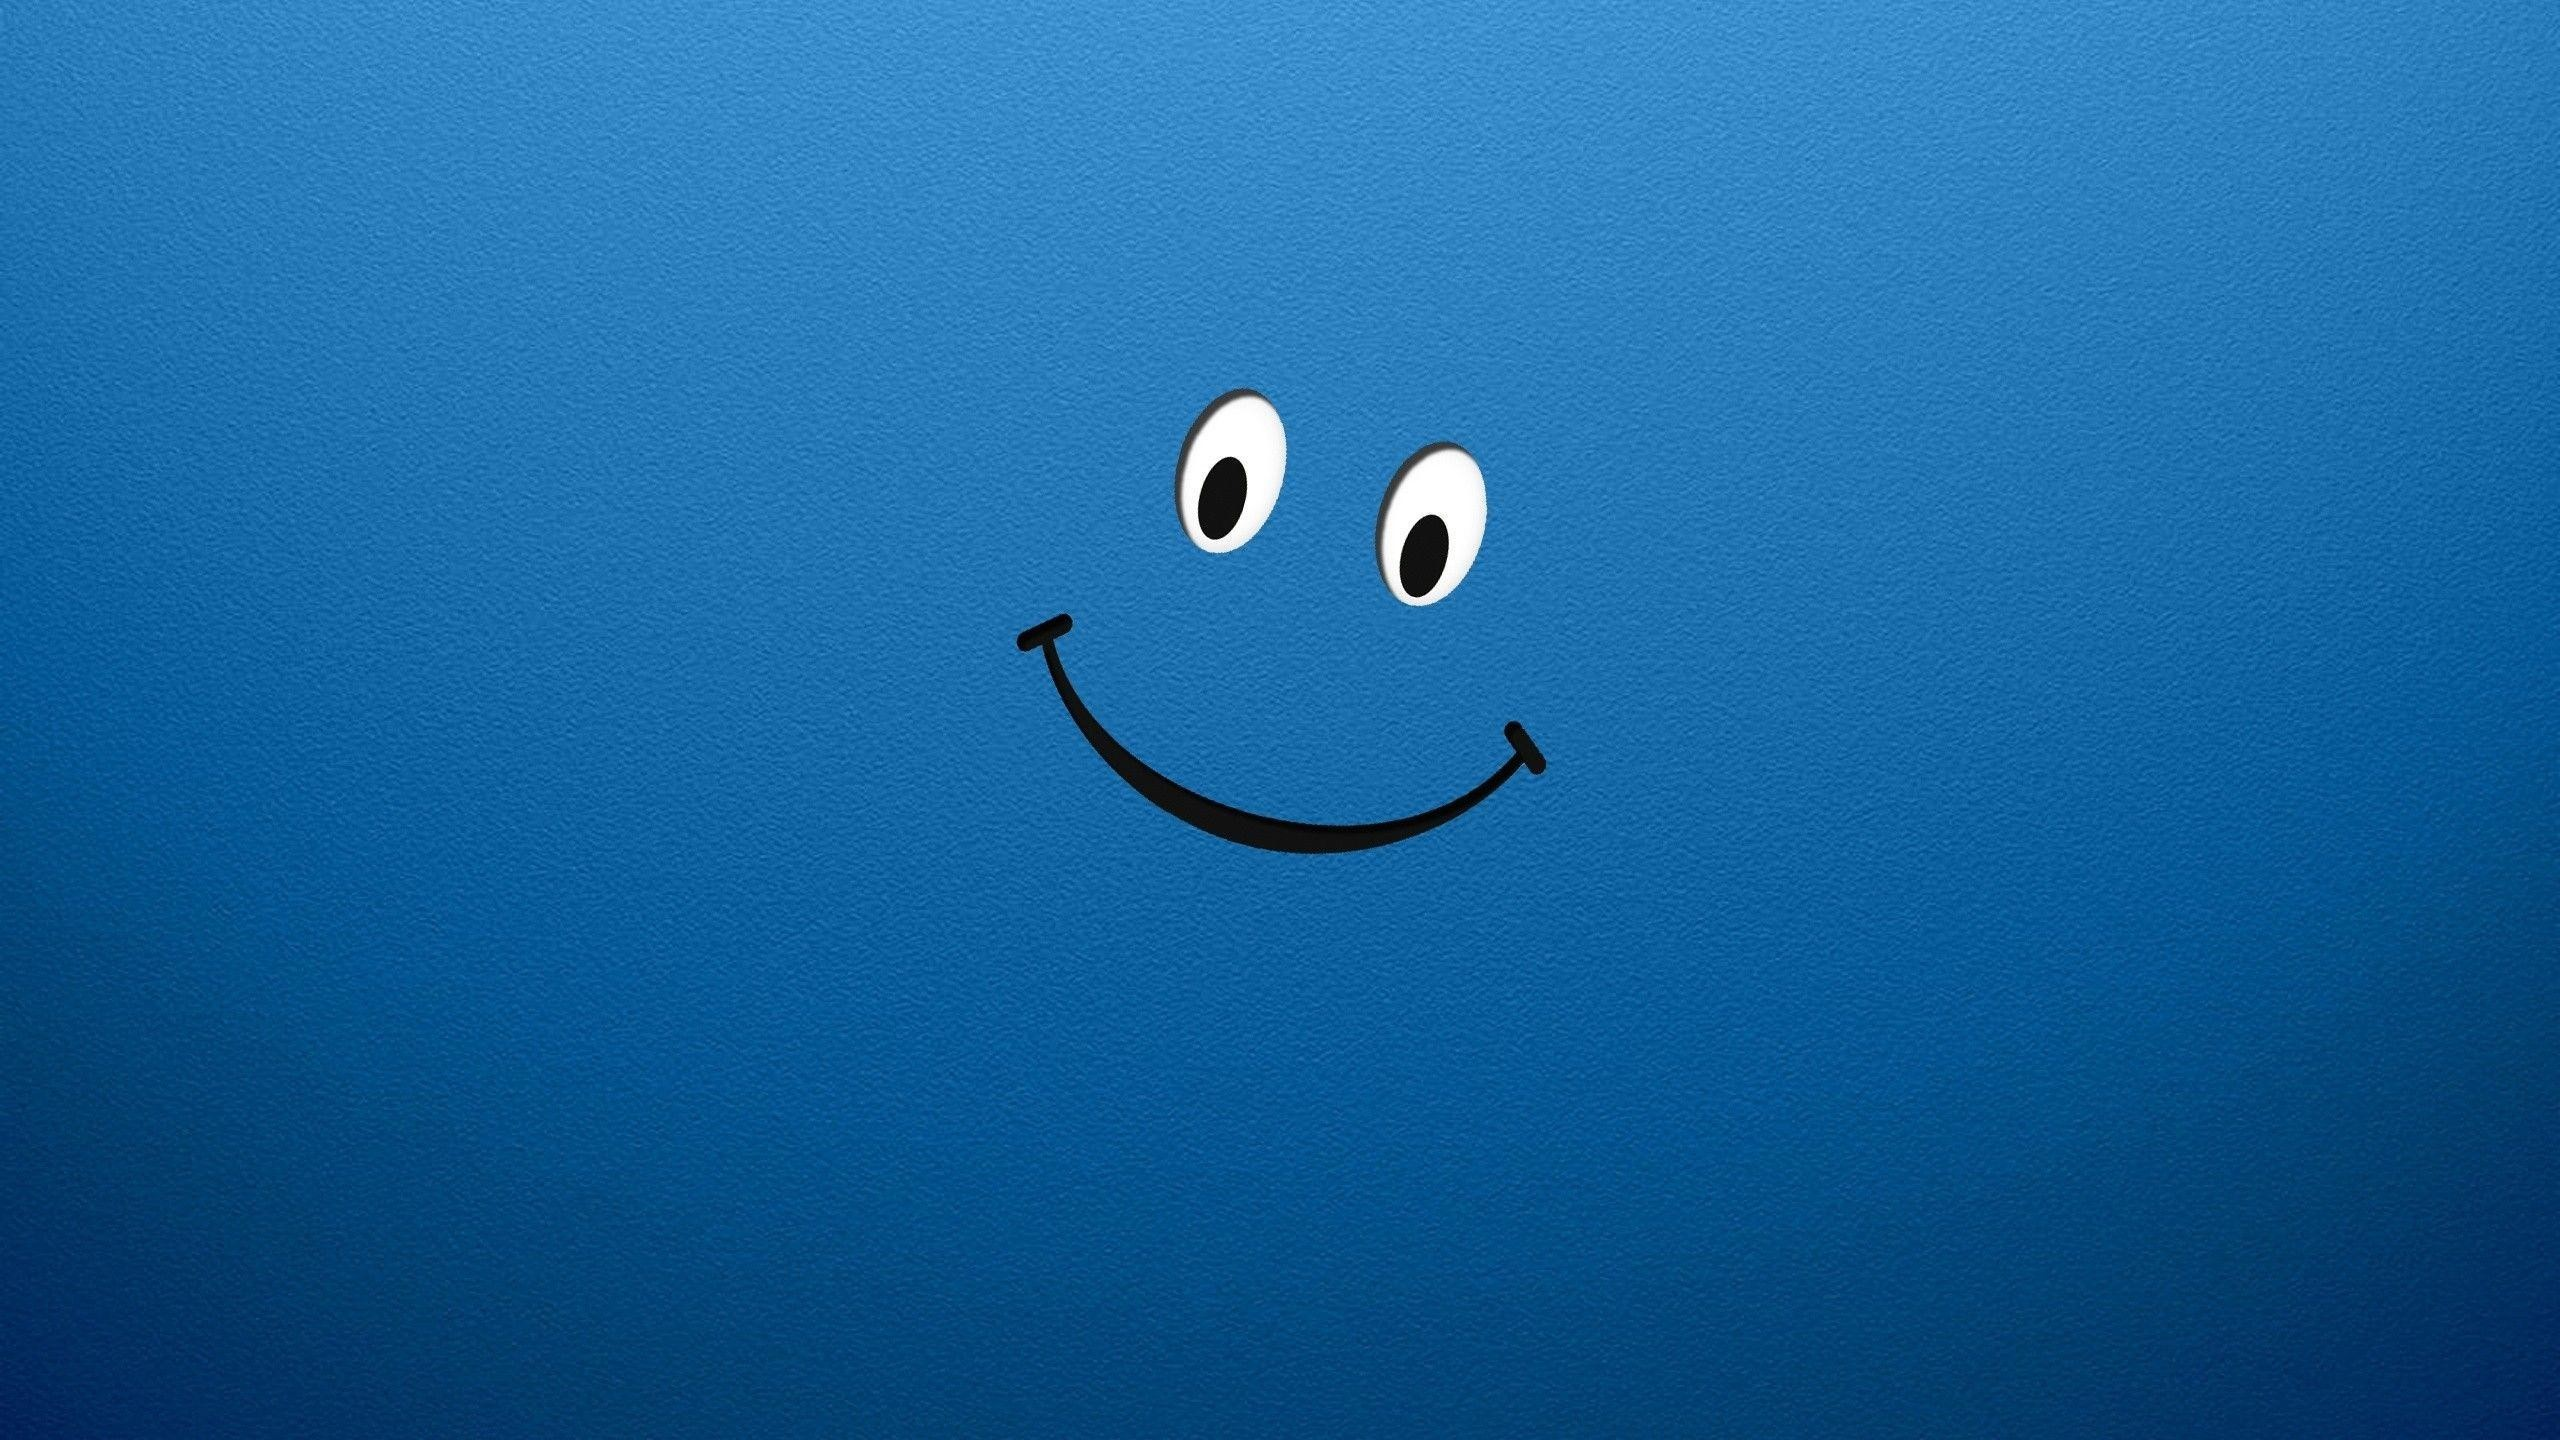 smiley face wallpapers 55 images